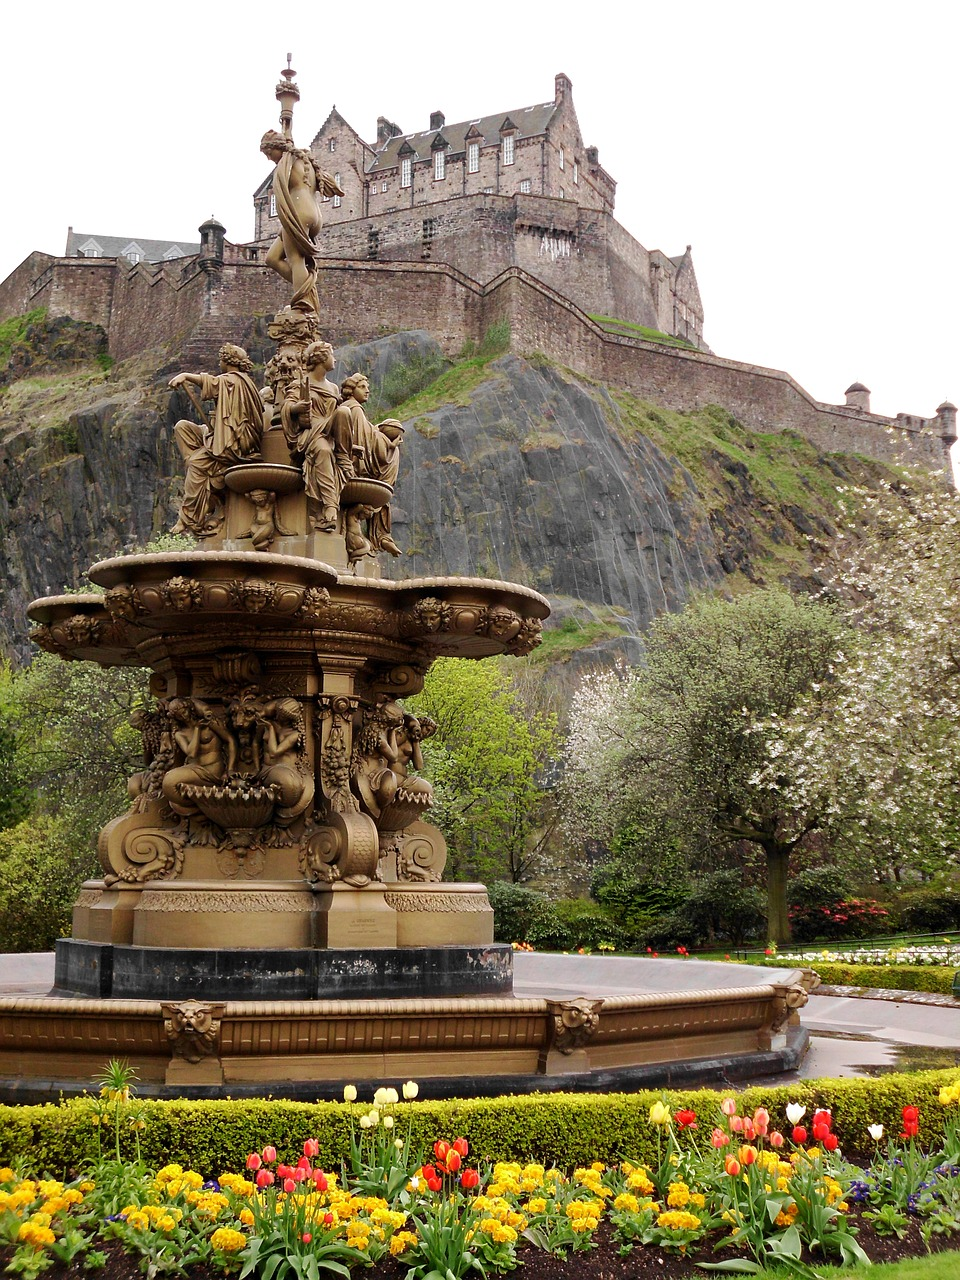 edinburgh-castle, pixabay June 2016.jpg